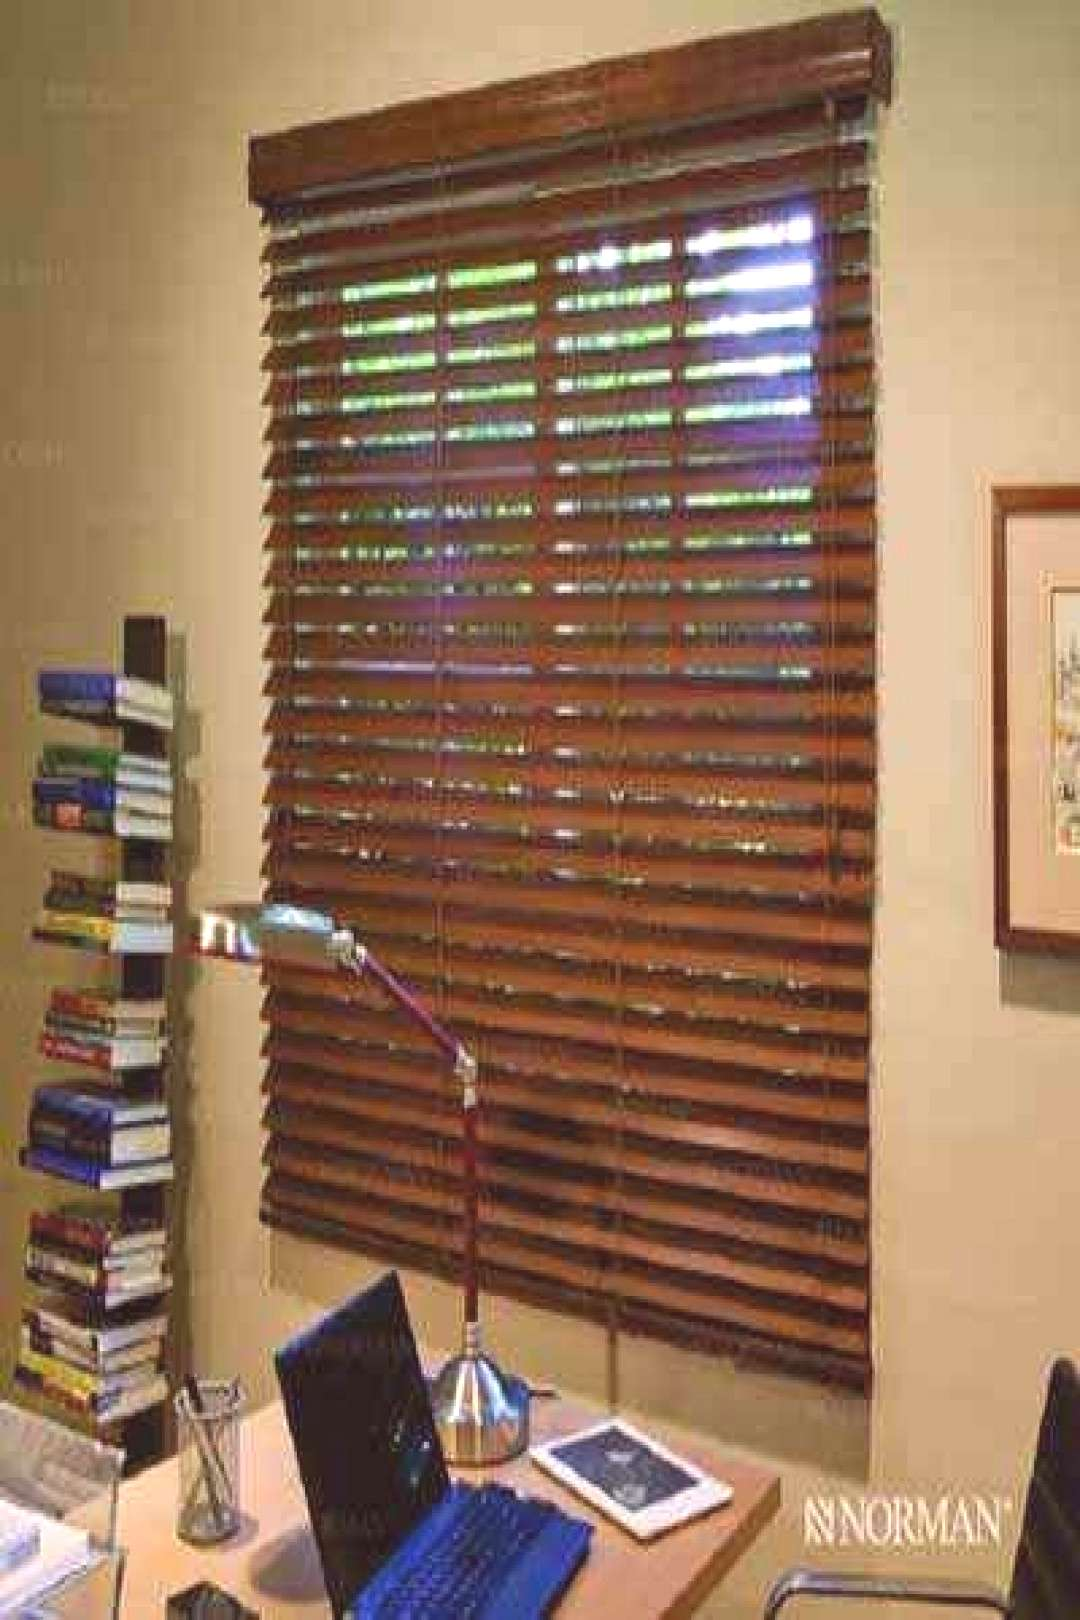 2 1/2 inches Normandy Real Wood SmartPrivacy Blinds - -